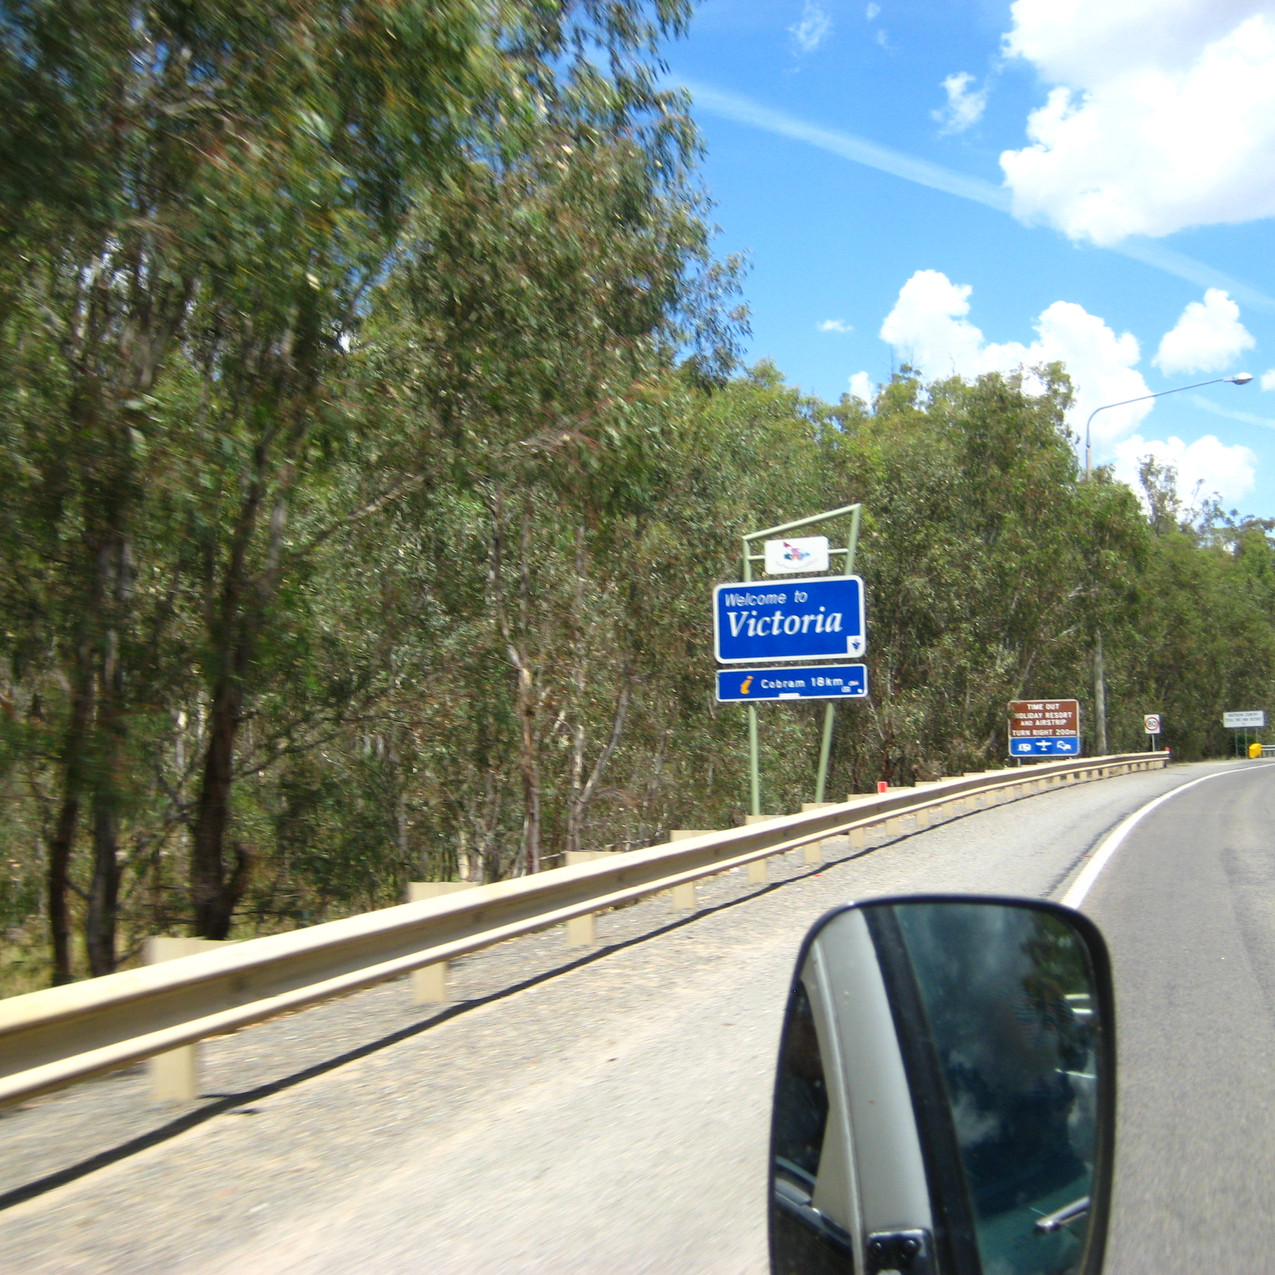 Entering a new state for us-Victoria